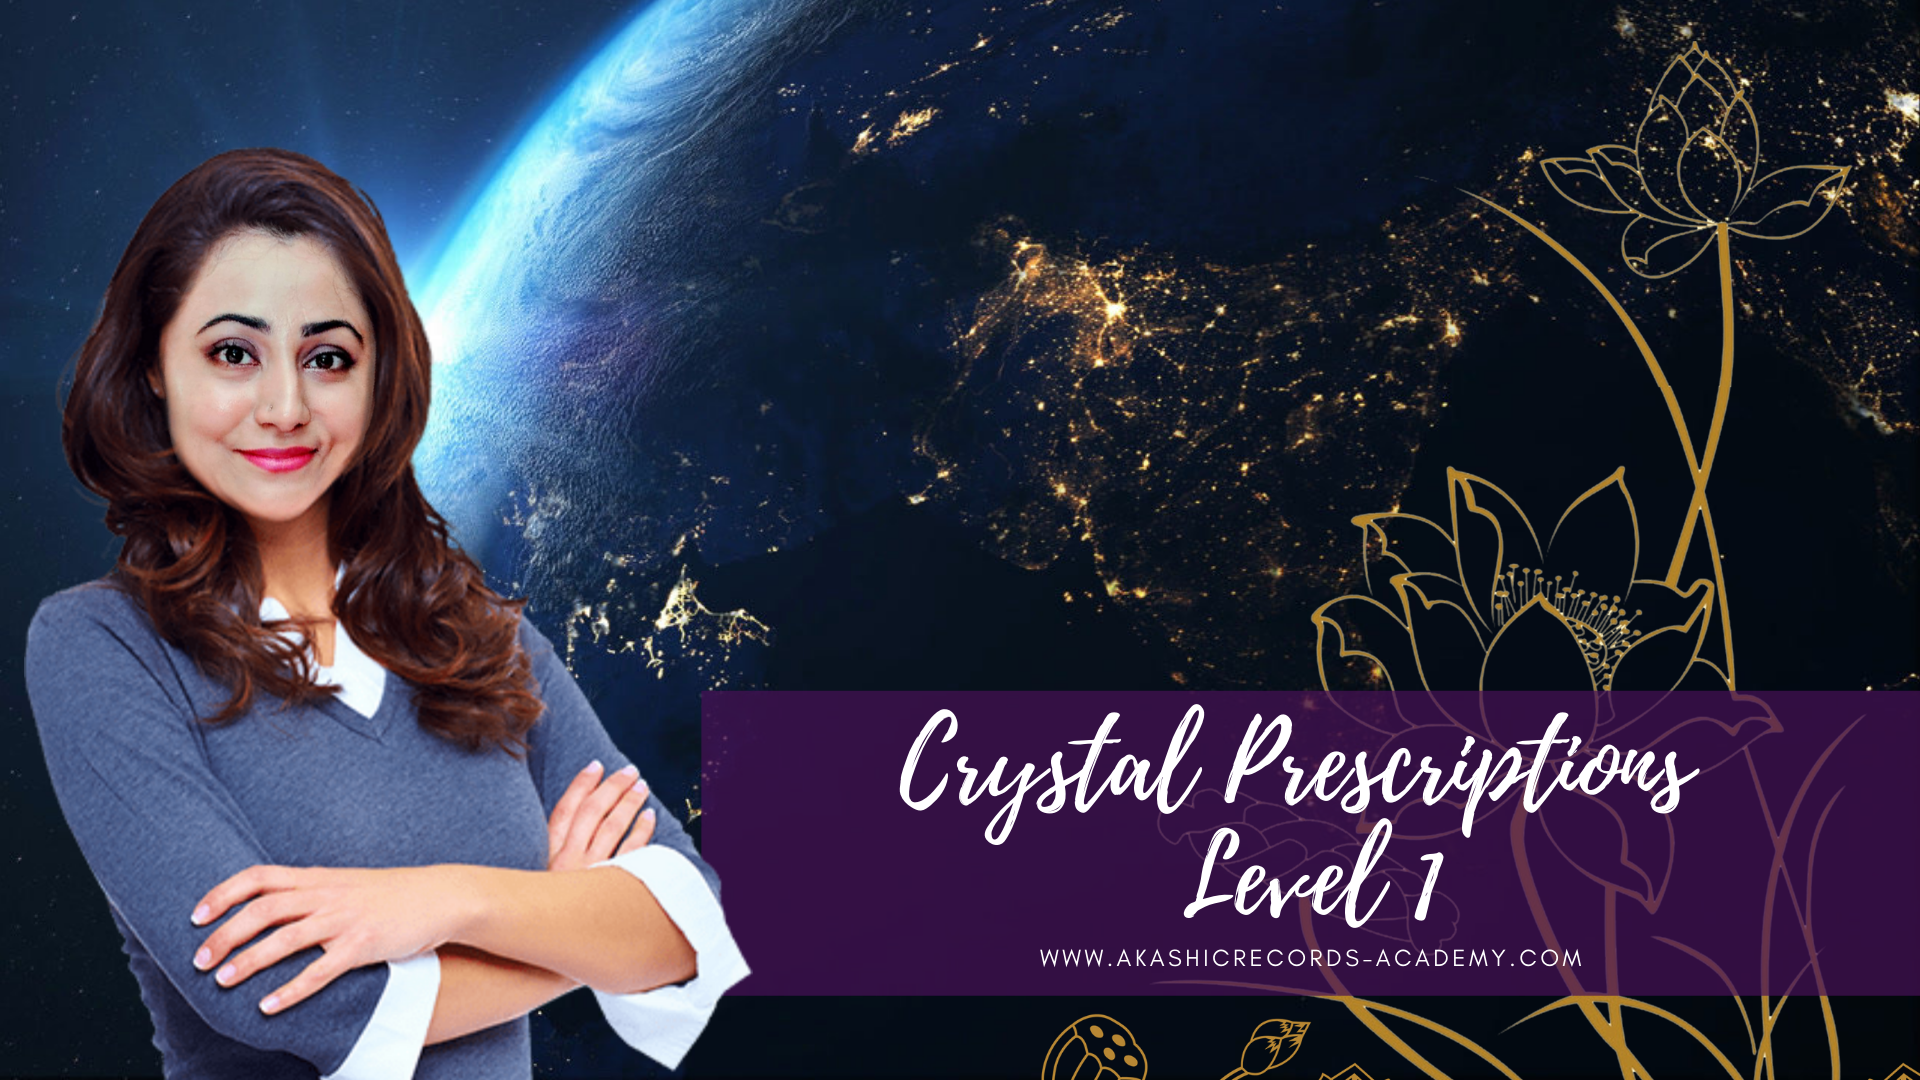 Crystal Prescriptions: Level 1